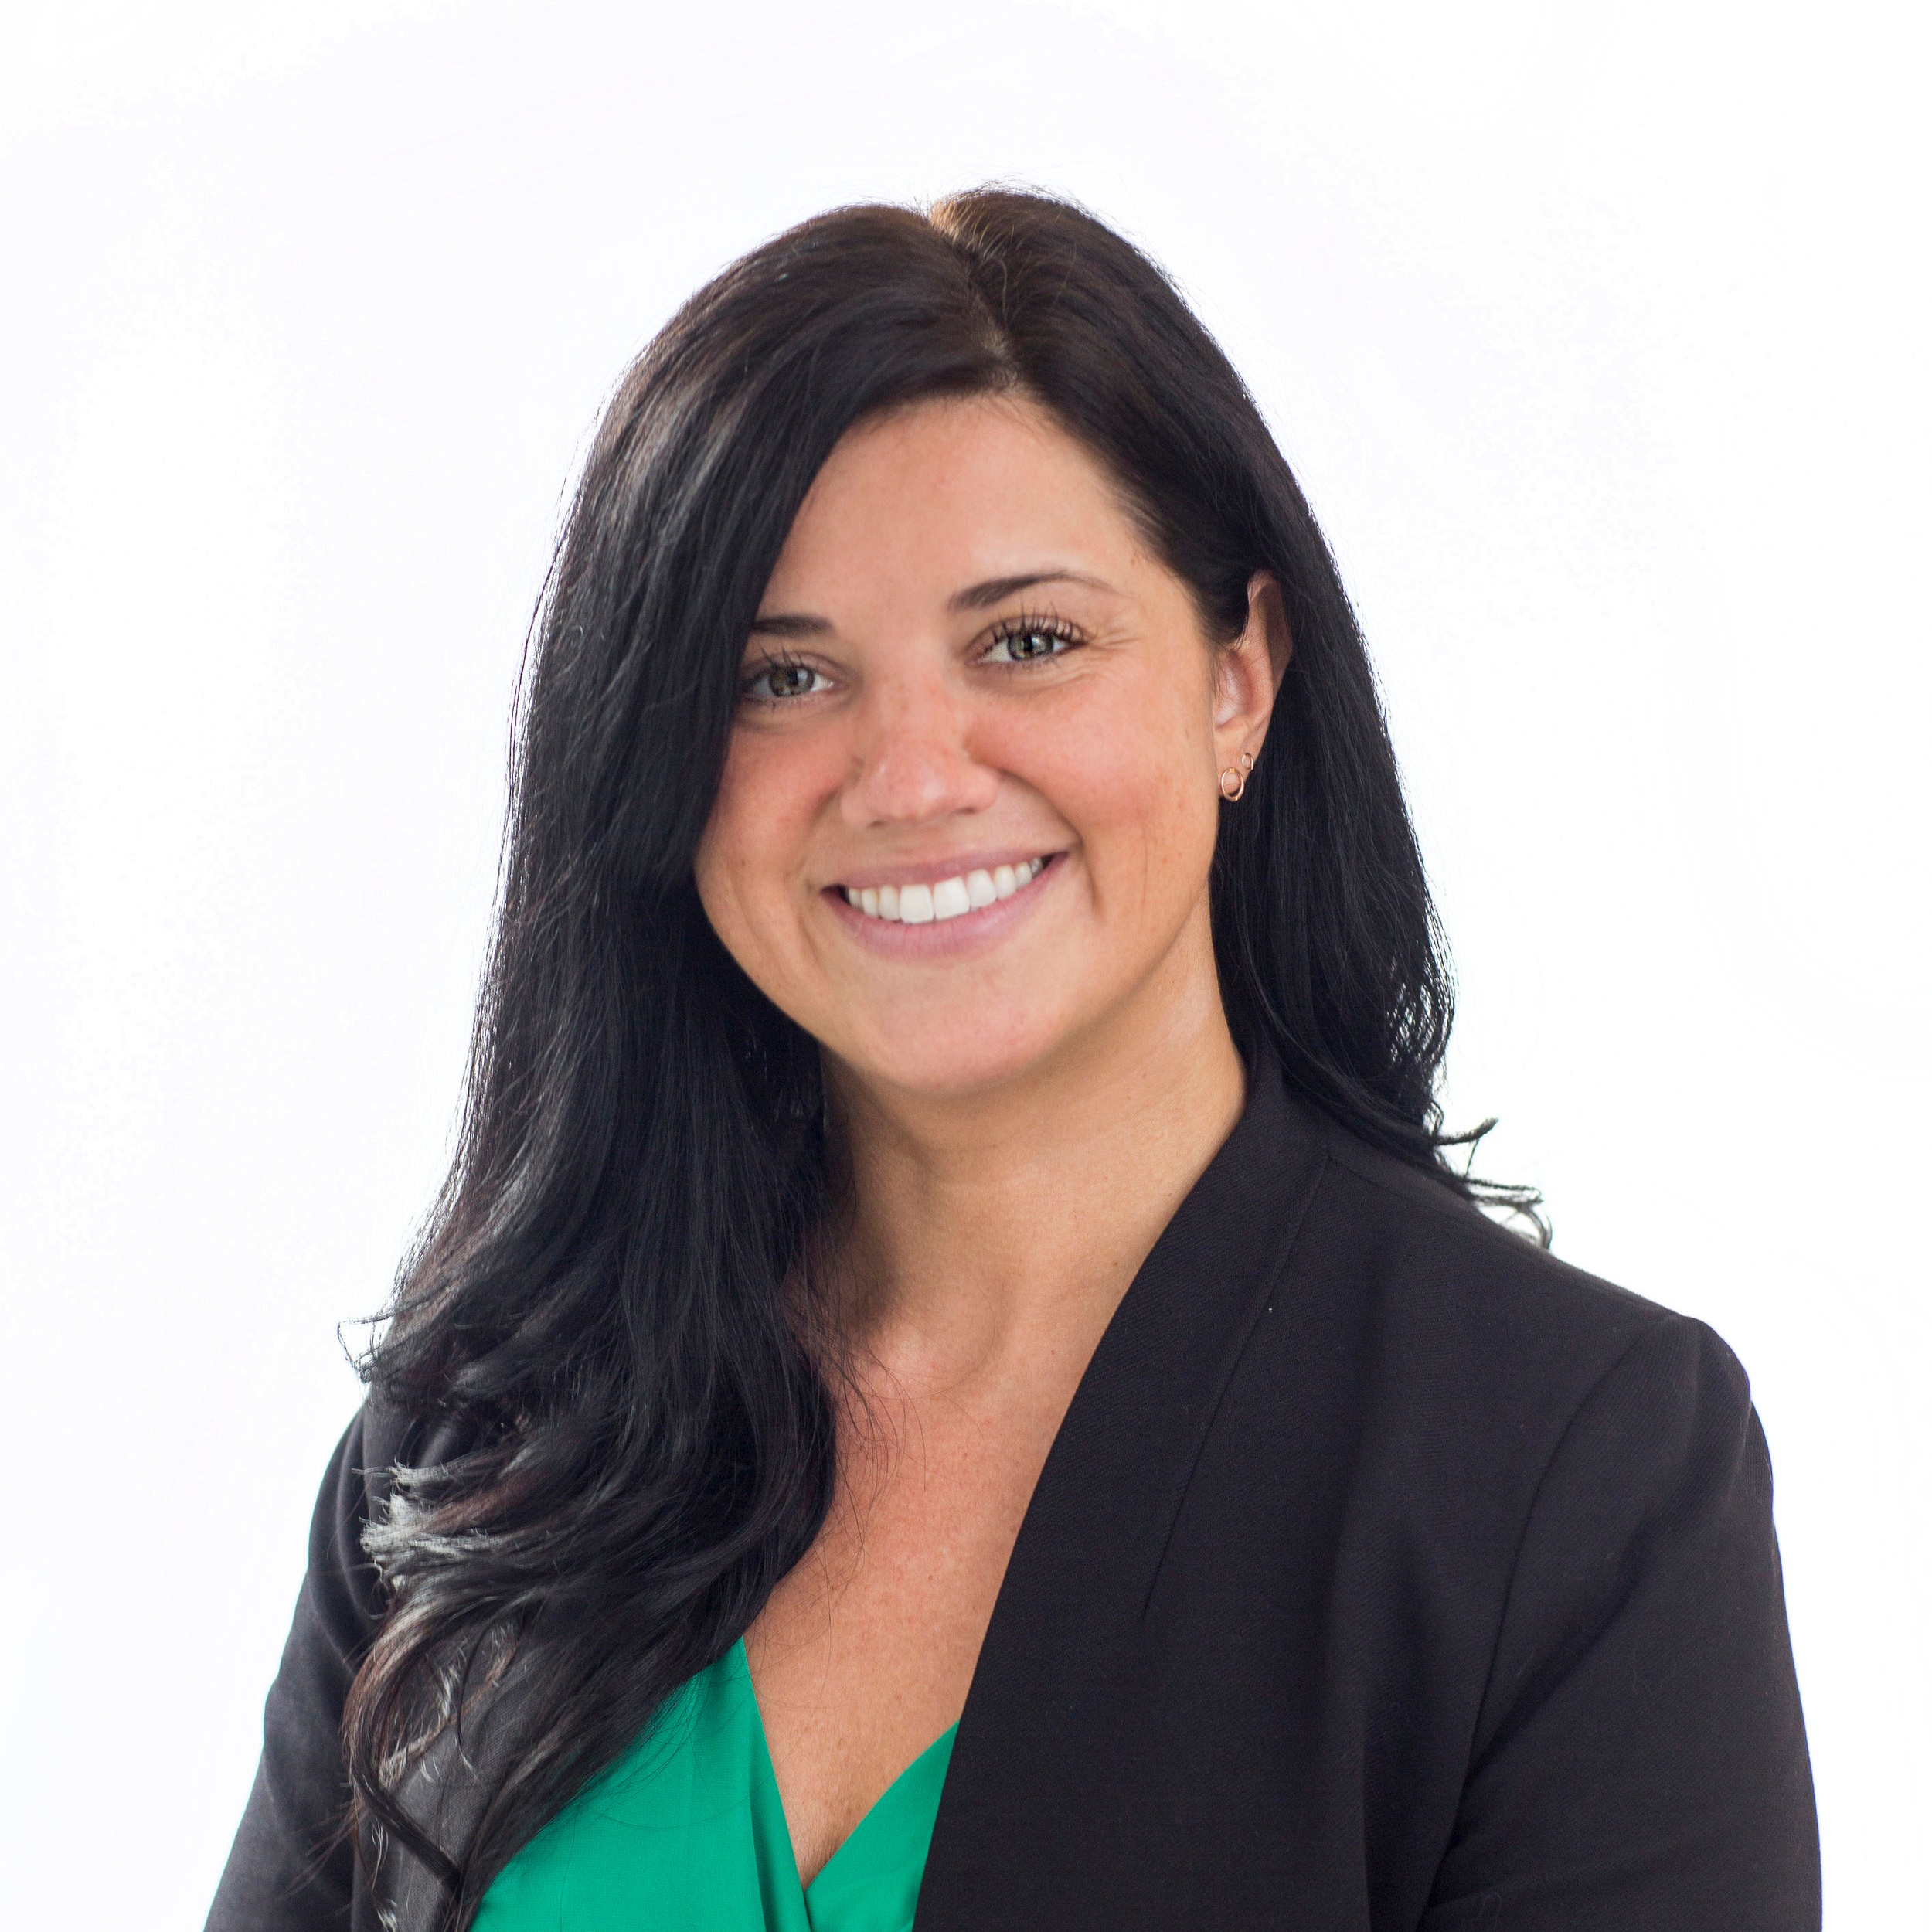 Missy Kotchey - Director of People Operations & Chief of Staff